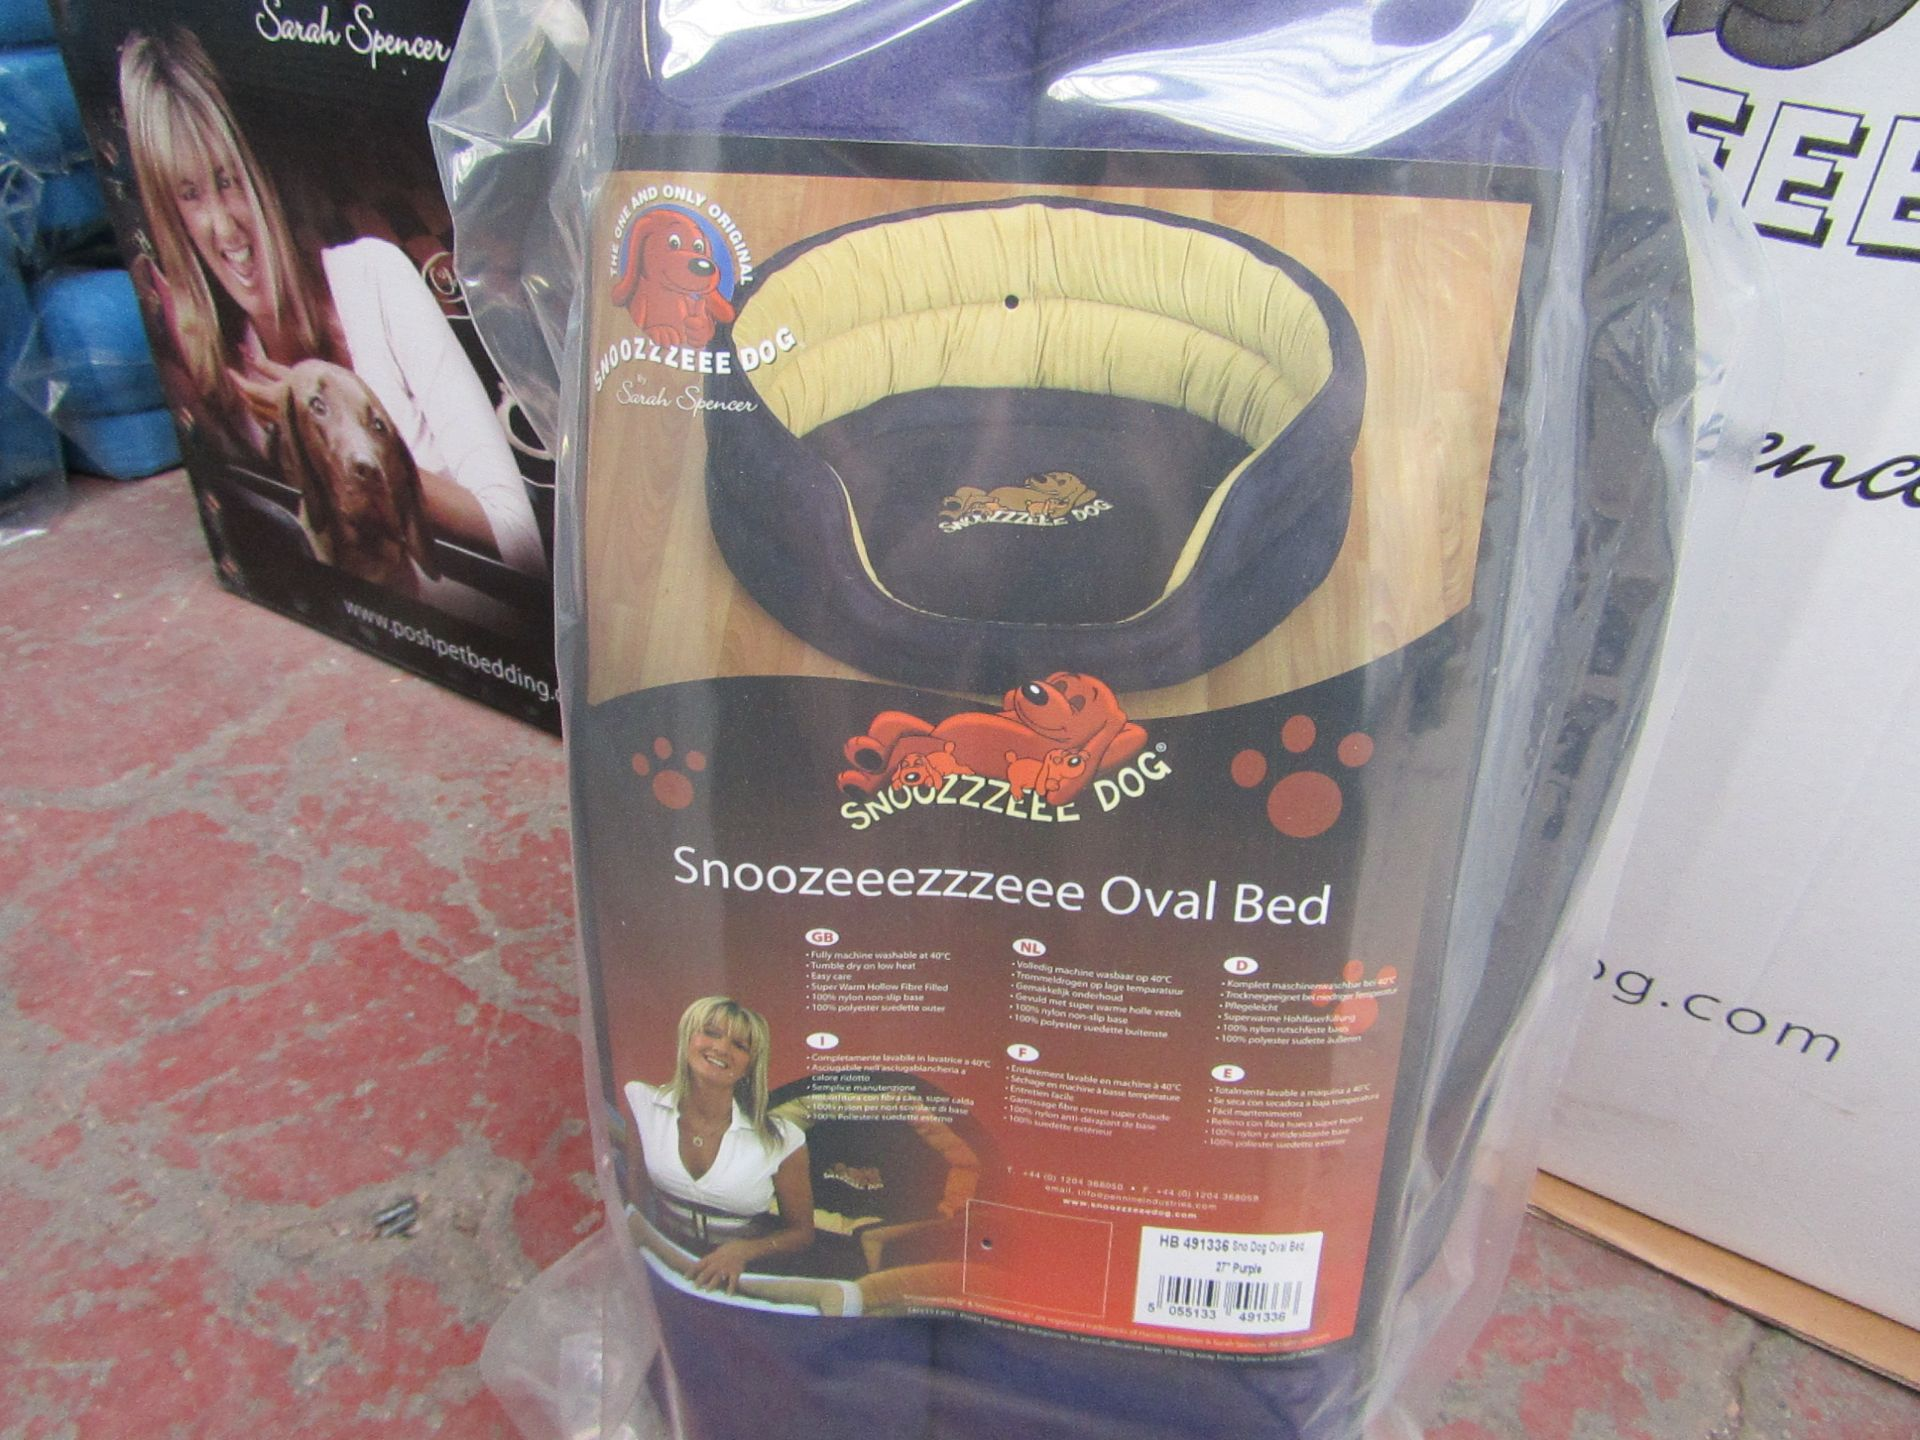 """5x Snoozzzeee Dog - Oval Purple Dog Bed (27"""") - All New & Packaged."""